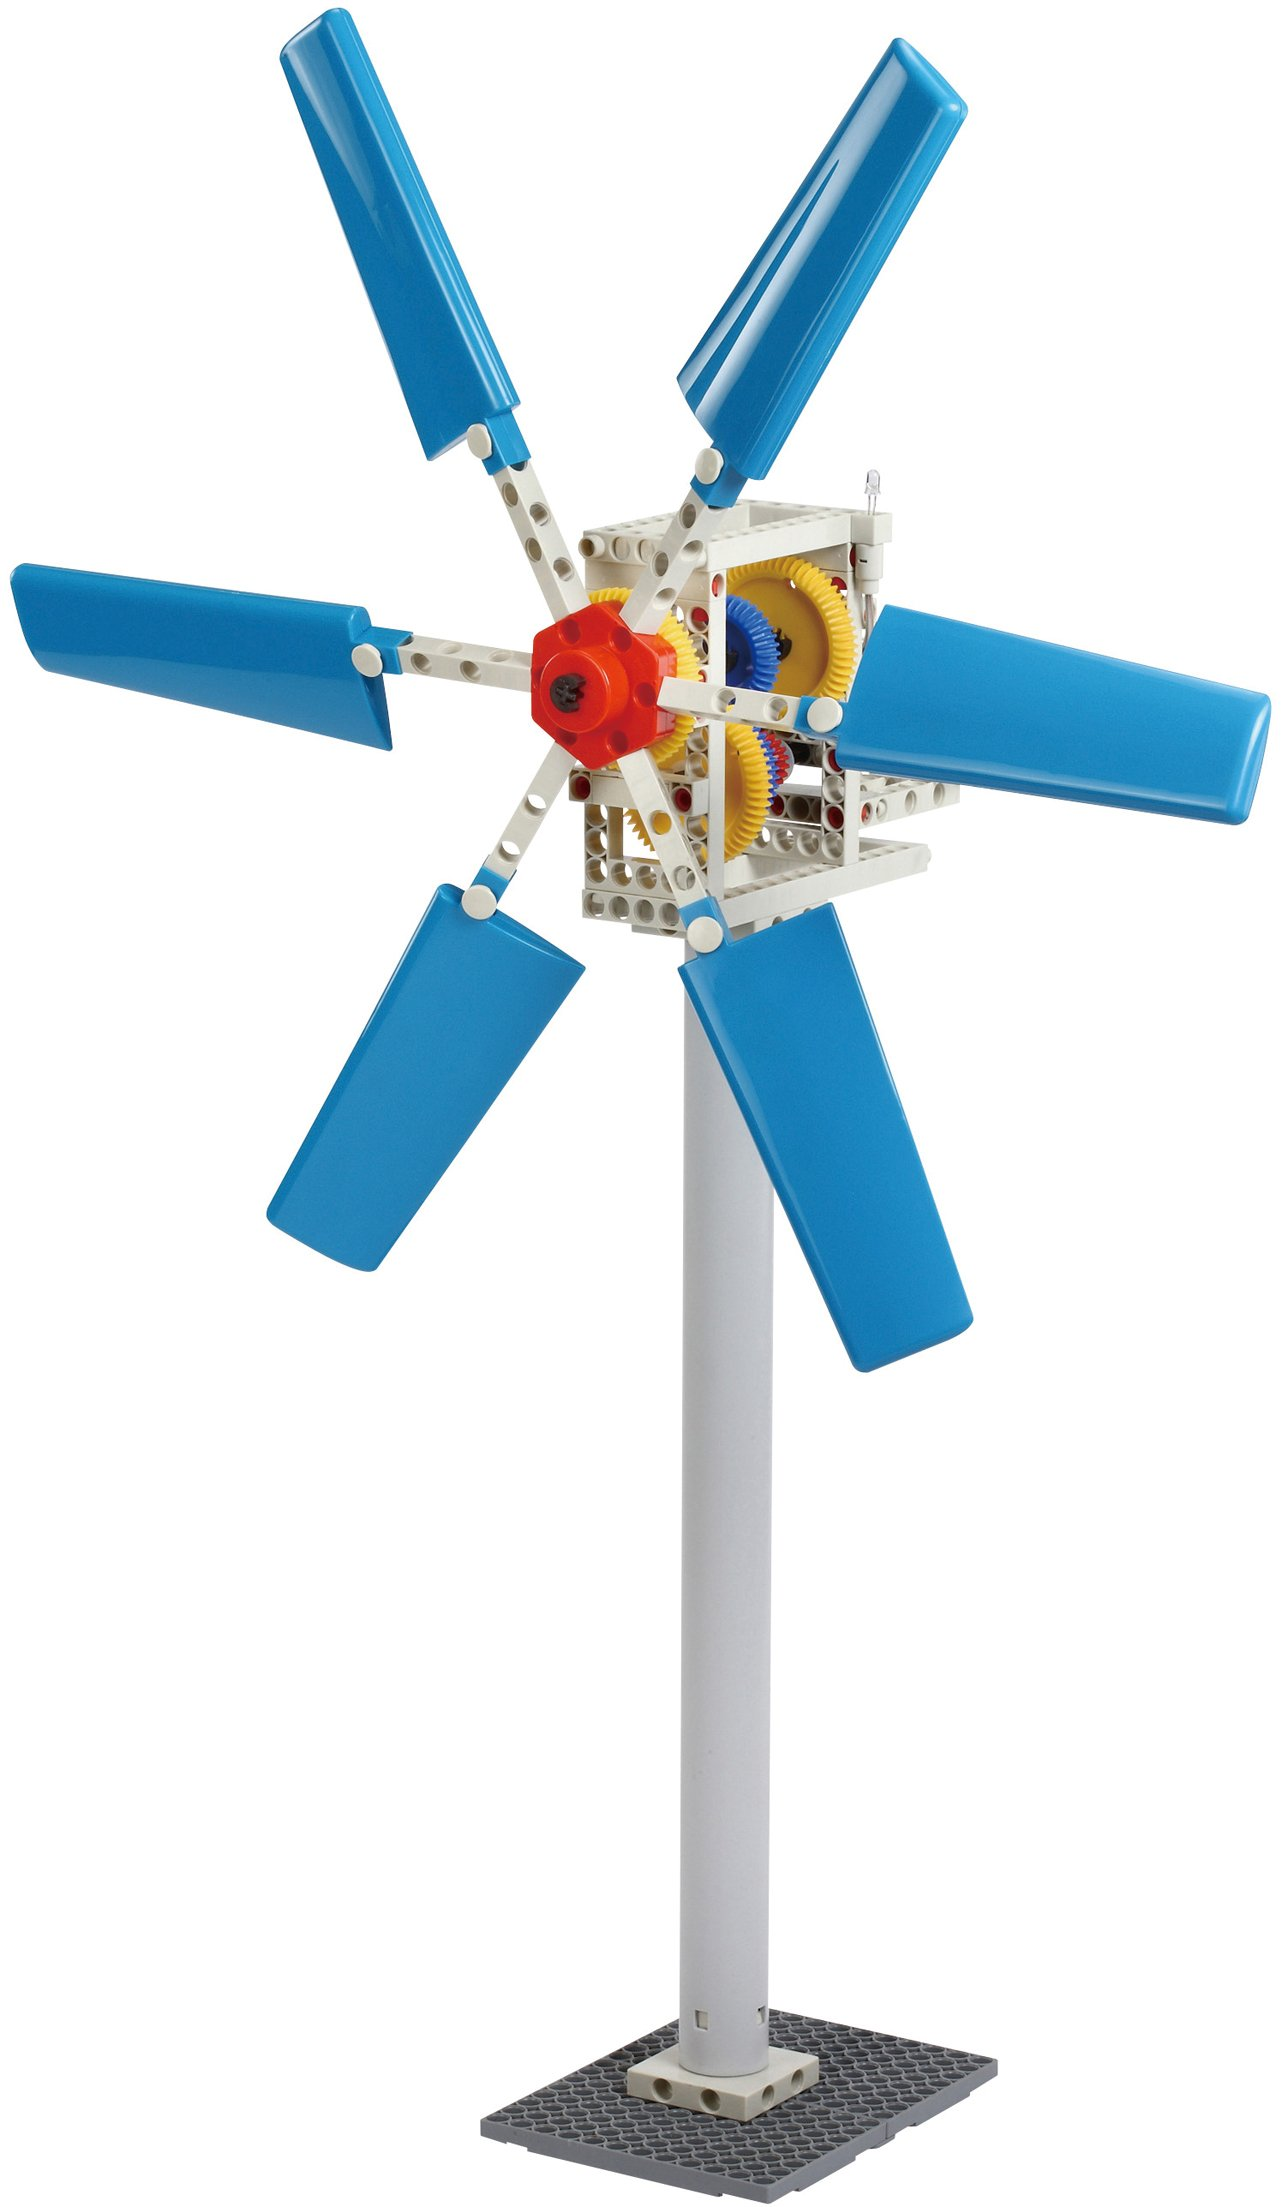 Thames & Kosmos Wind Power 2.0 Science Experiment Kit | Build Wind-Powered Generators to Energize Electric Vehicles | 3-Foot-Tall Long-Bladed Turbine | Experiments in Renewable Energy by Thames & Kosmos (Image #4)